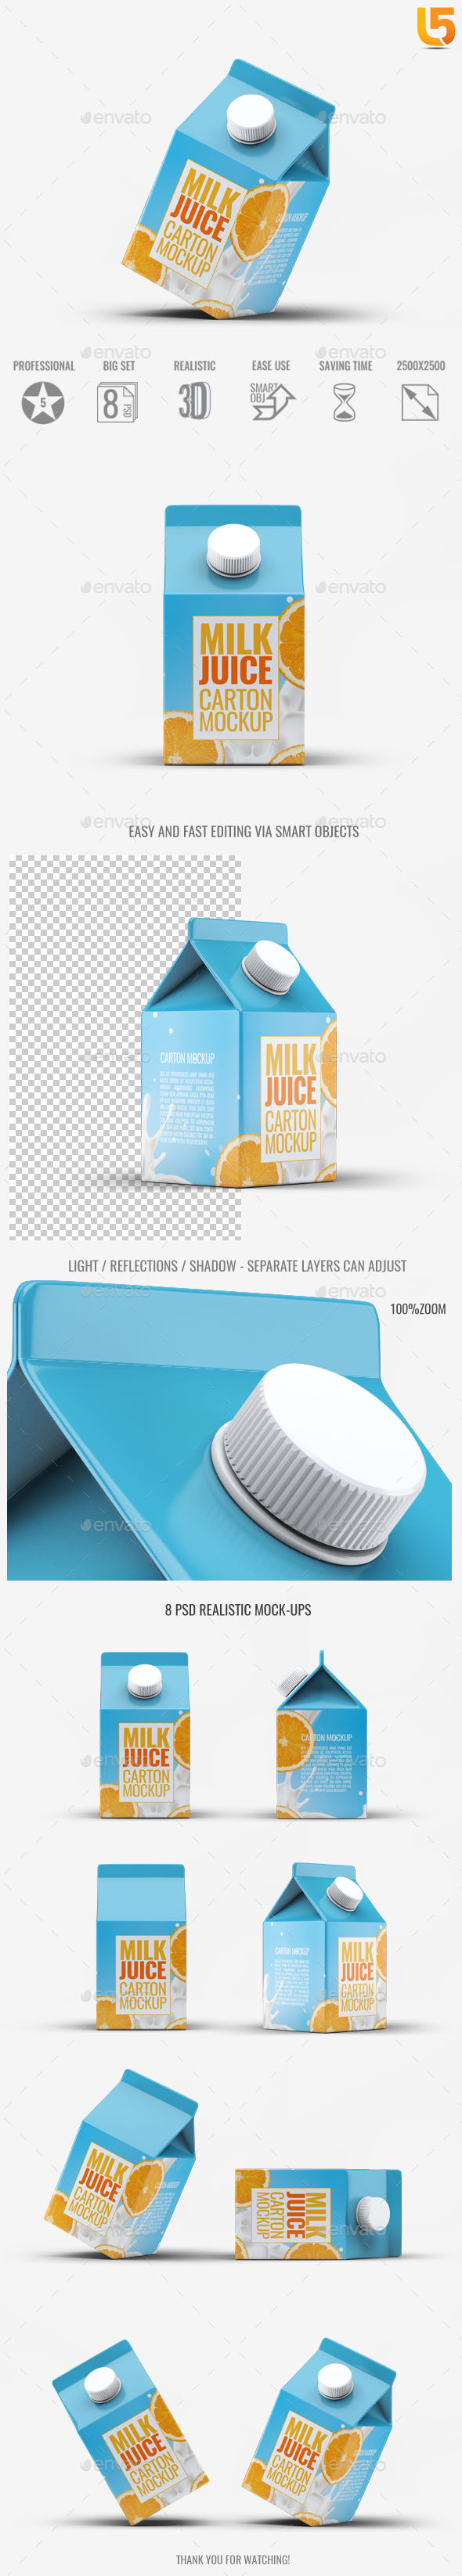 Milk or Juice Carton Mock-Up v.4 - Food and Drink Packaging